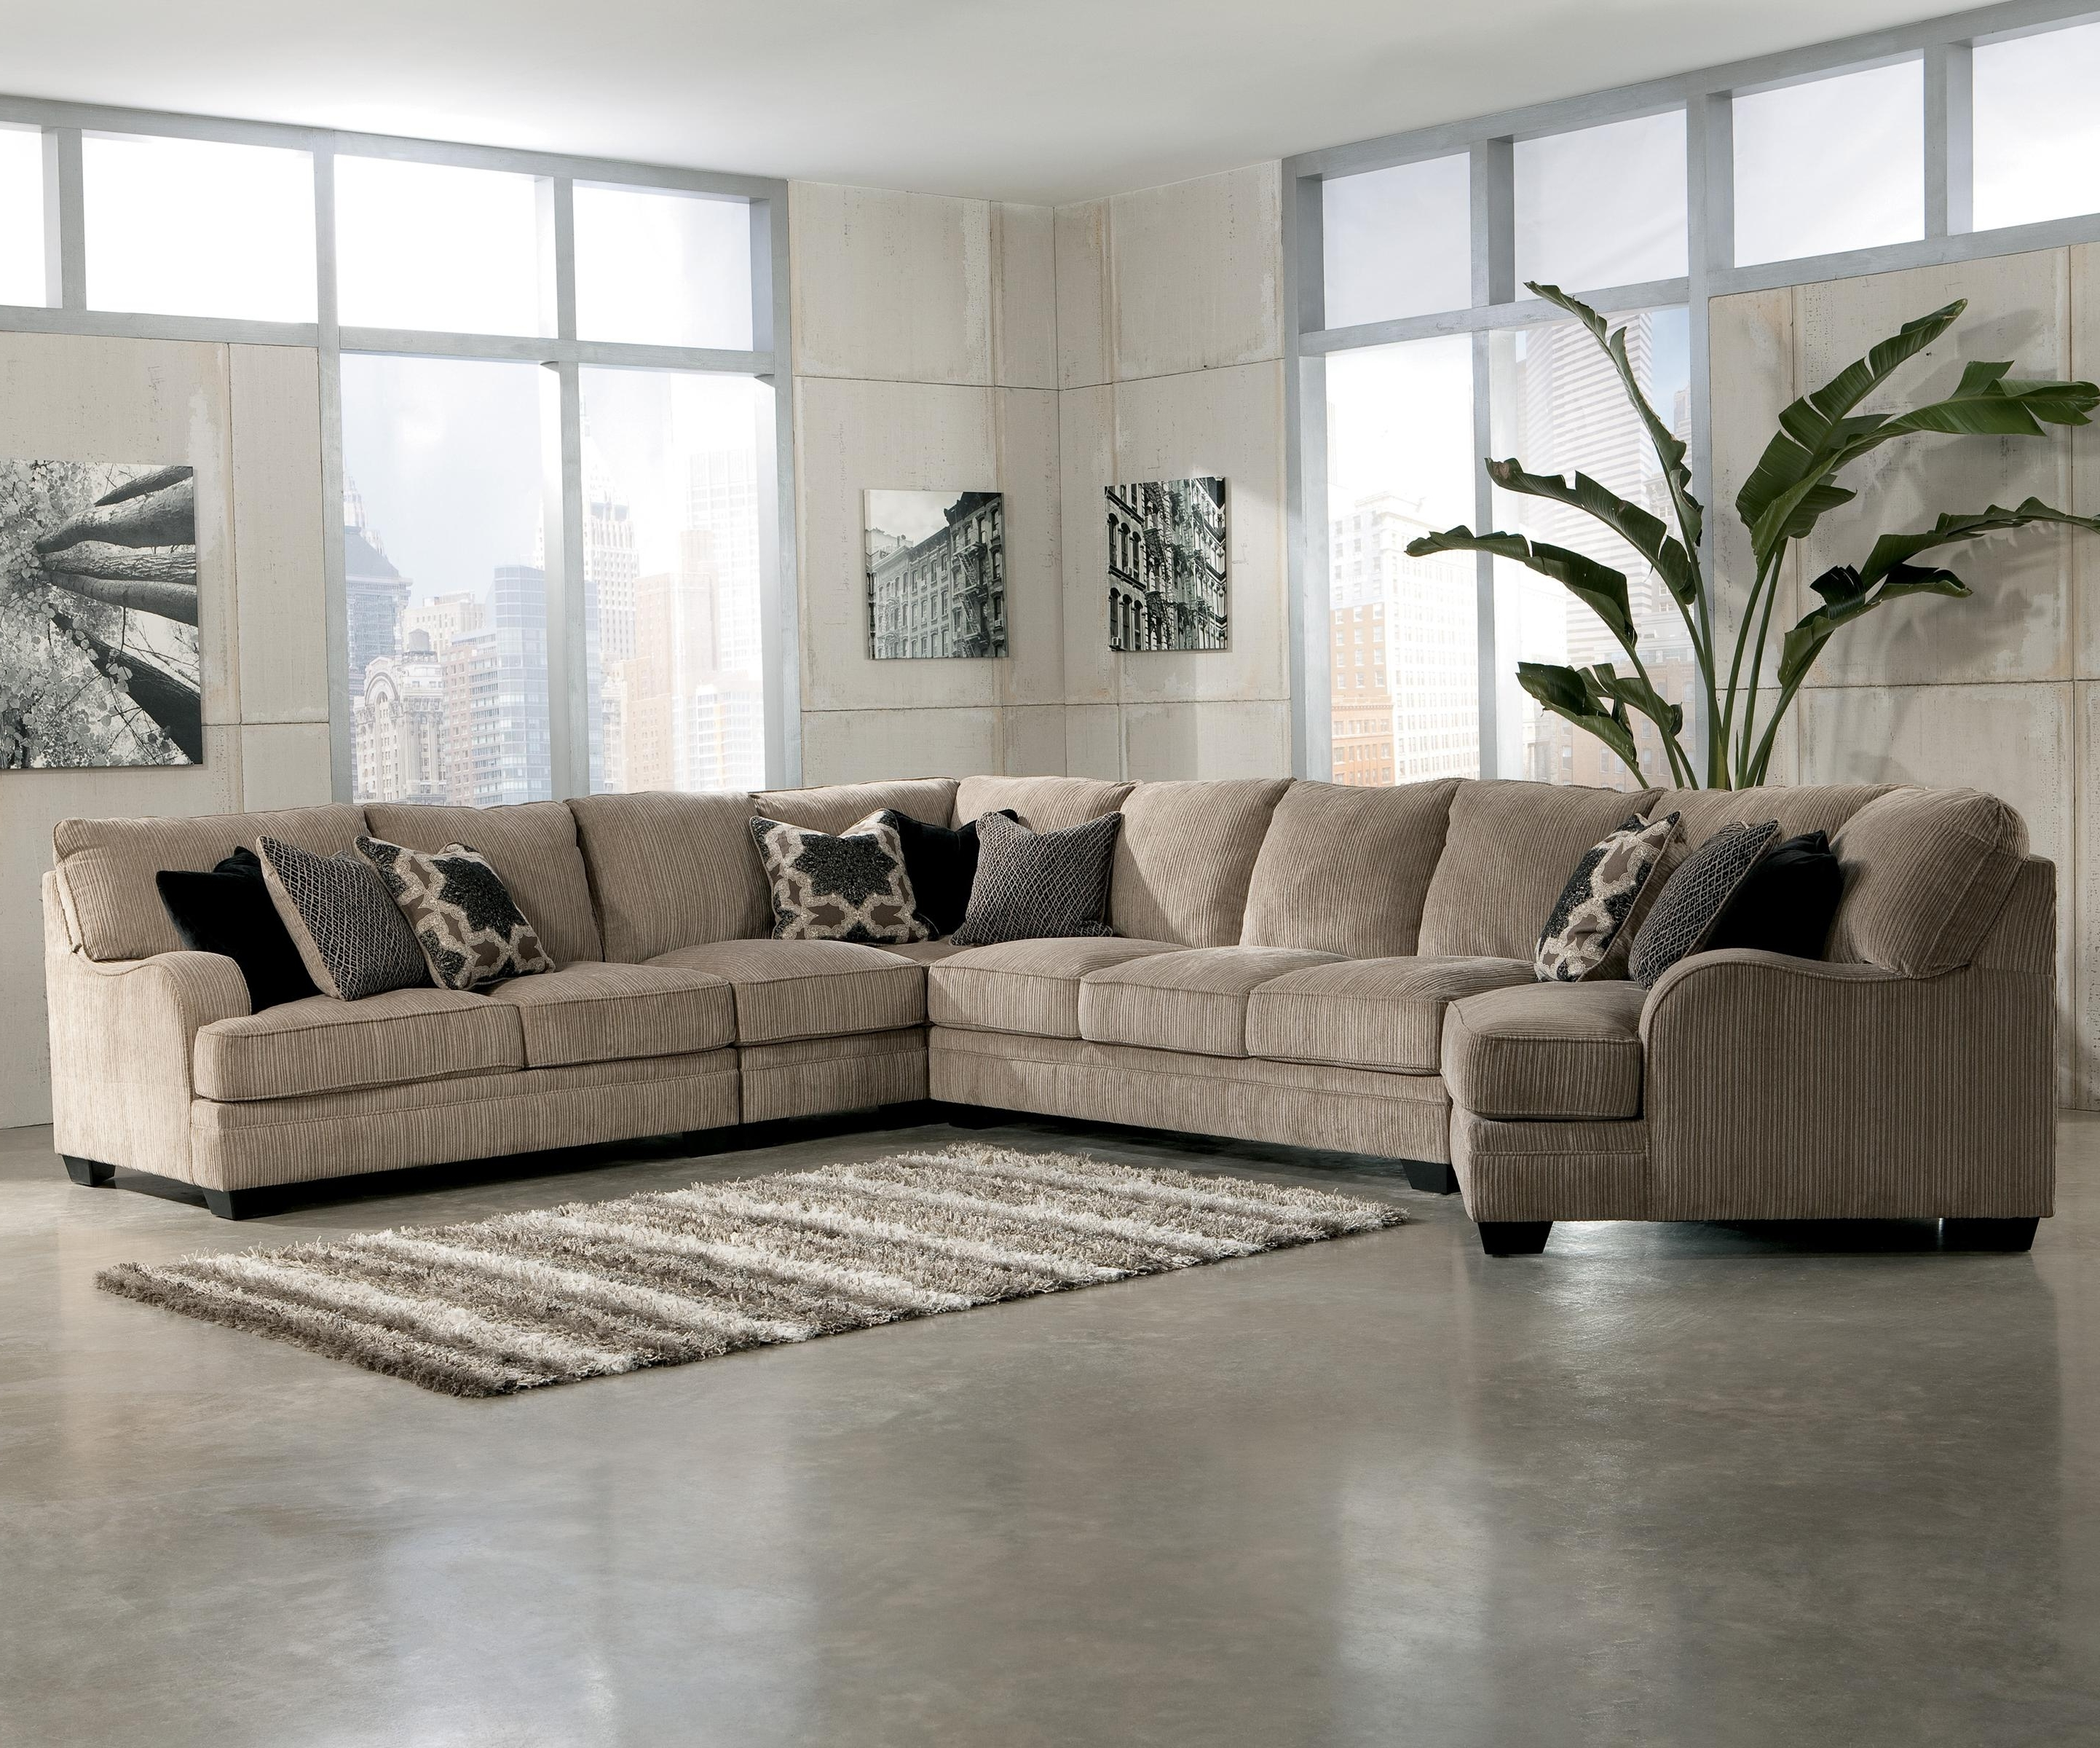 Signature Designashley Katisha – Platinum 5 Piece Sectional For Newest Pittsburgh Sectional Sofas (View 8 of 20)